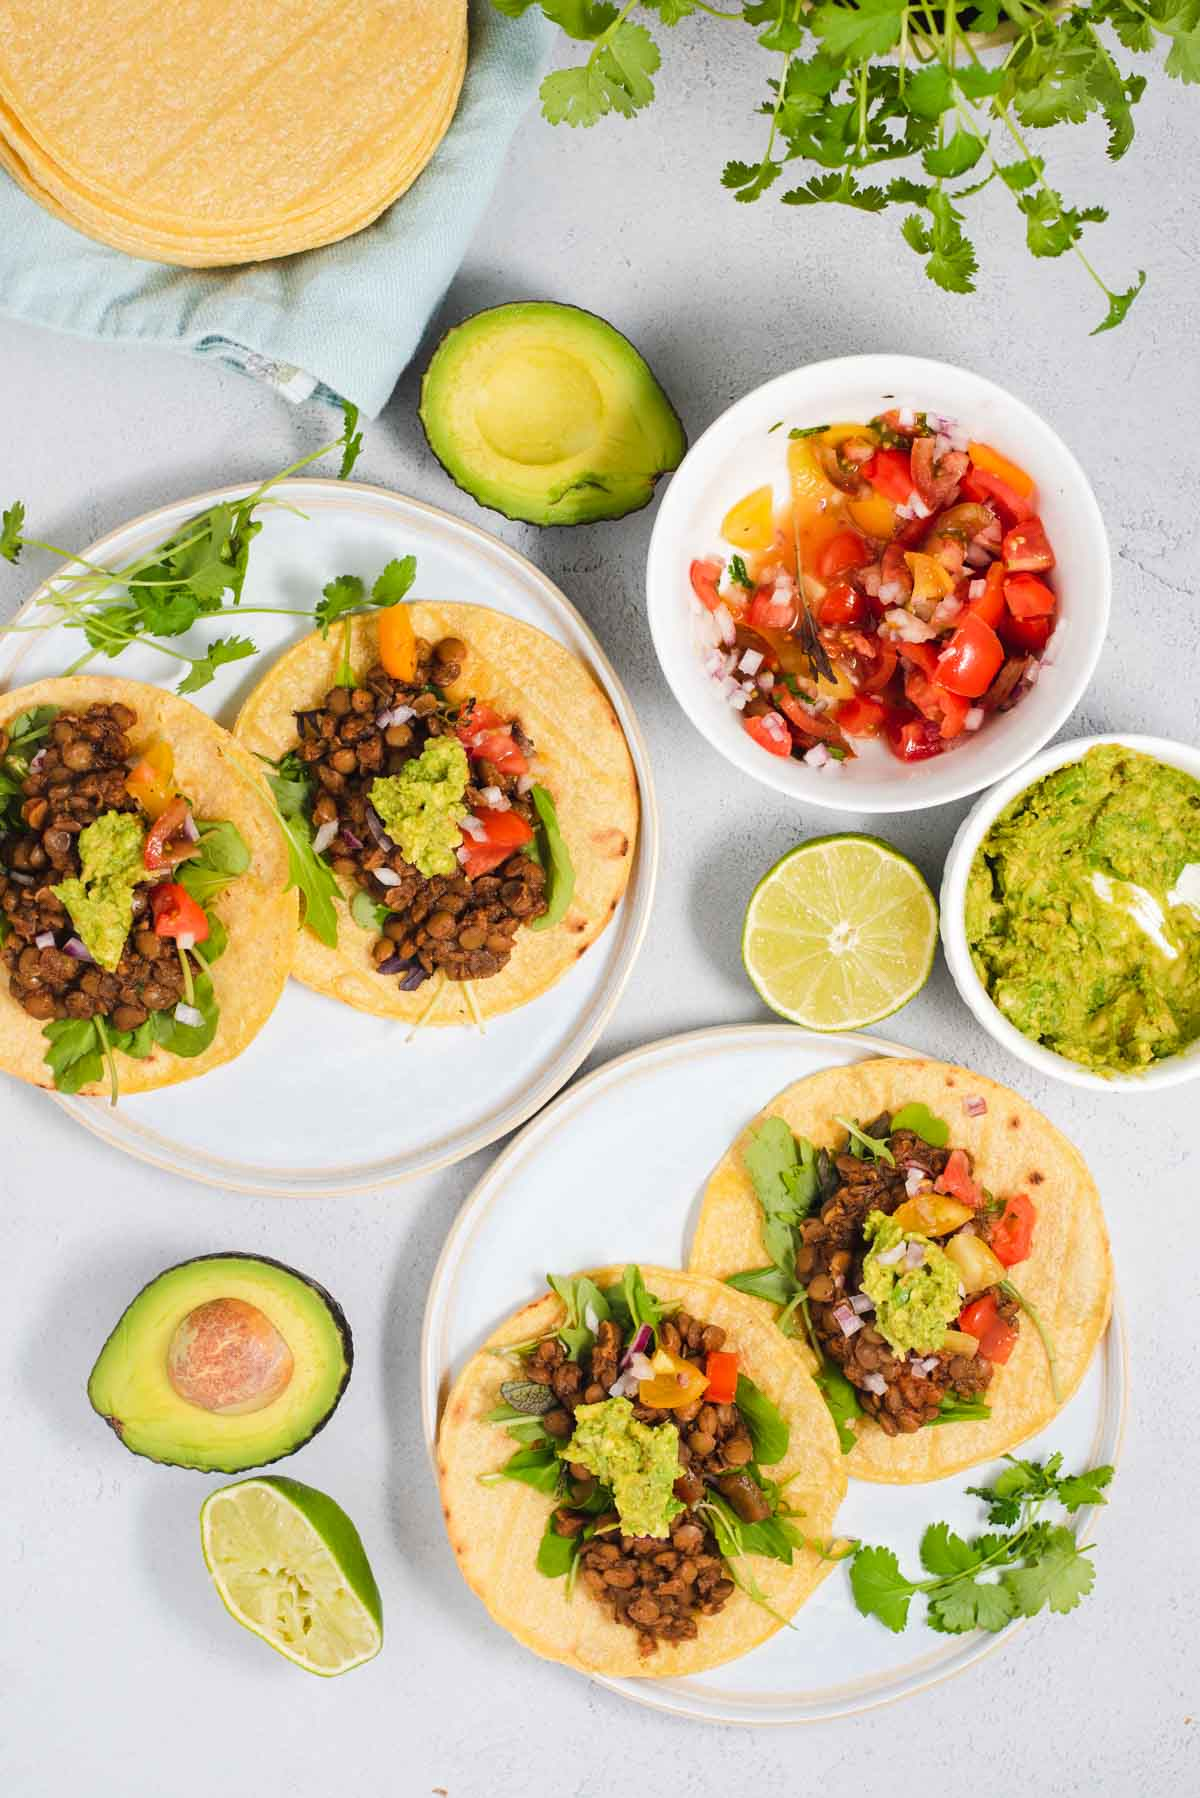 Overhead view of four lentil tacos on white plates surrounded by salsa, guacamole and avocado